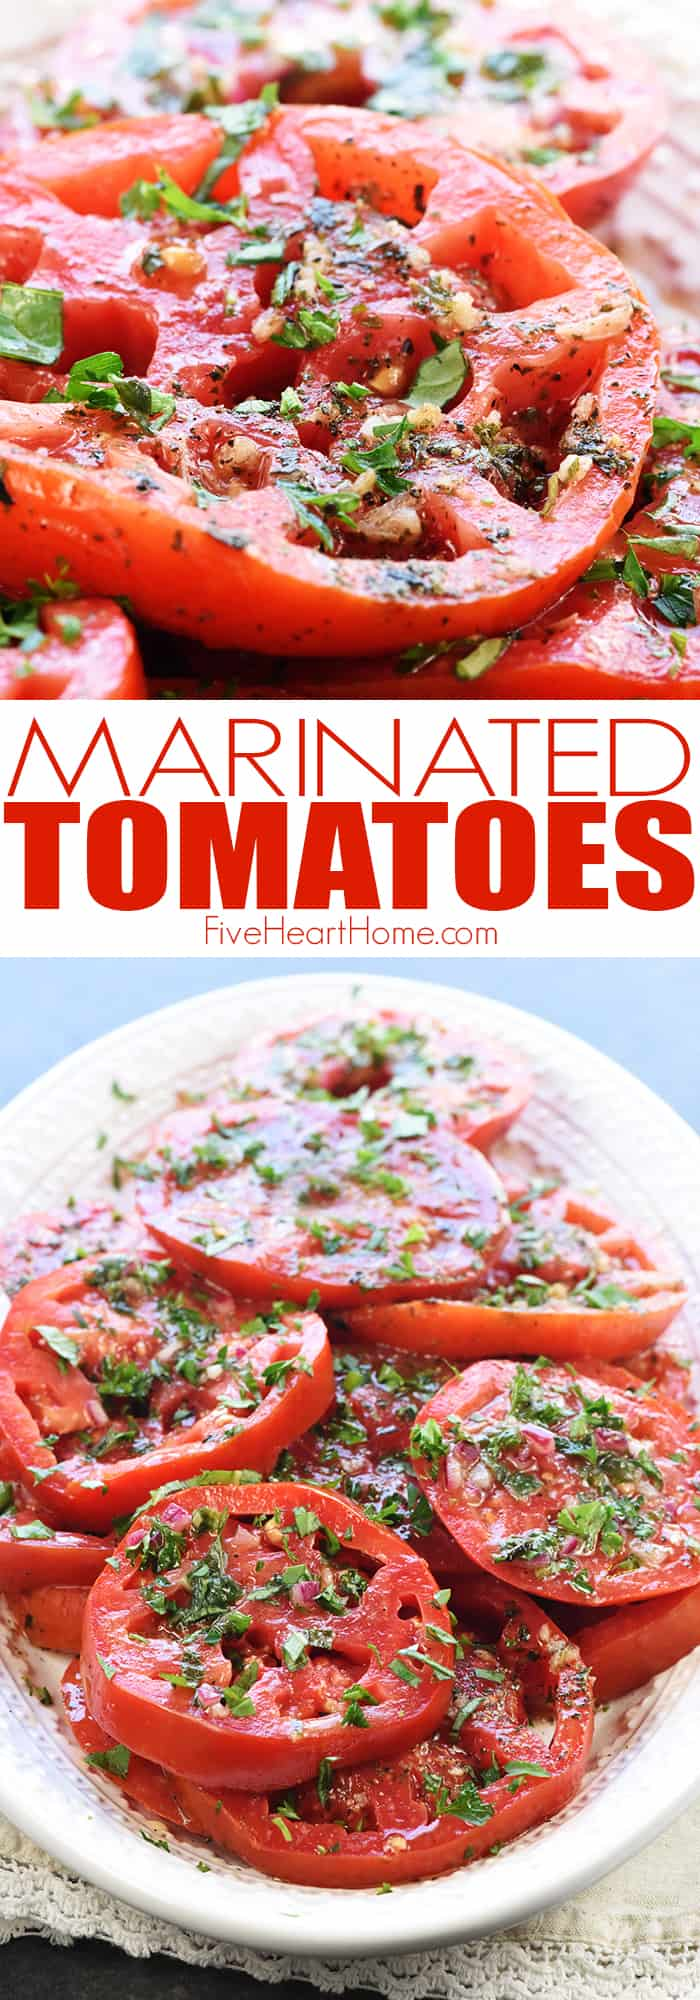 Amazing Marinated Tomatoes Fivehearthome